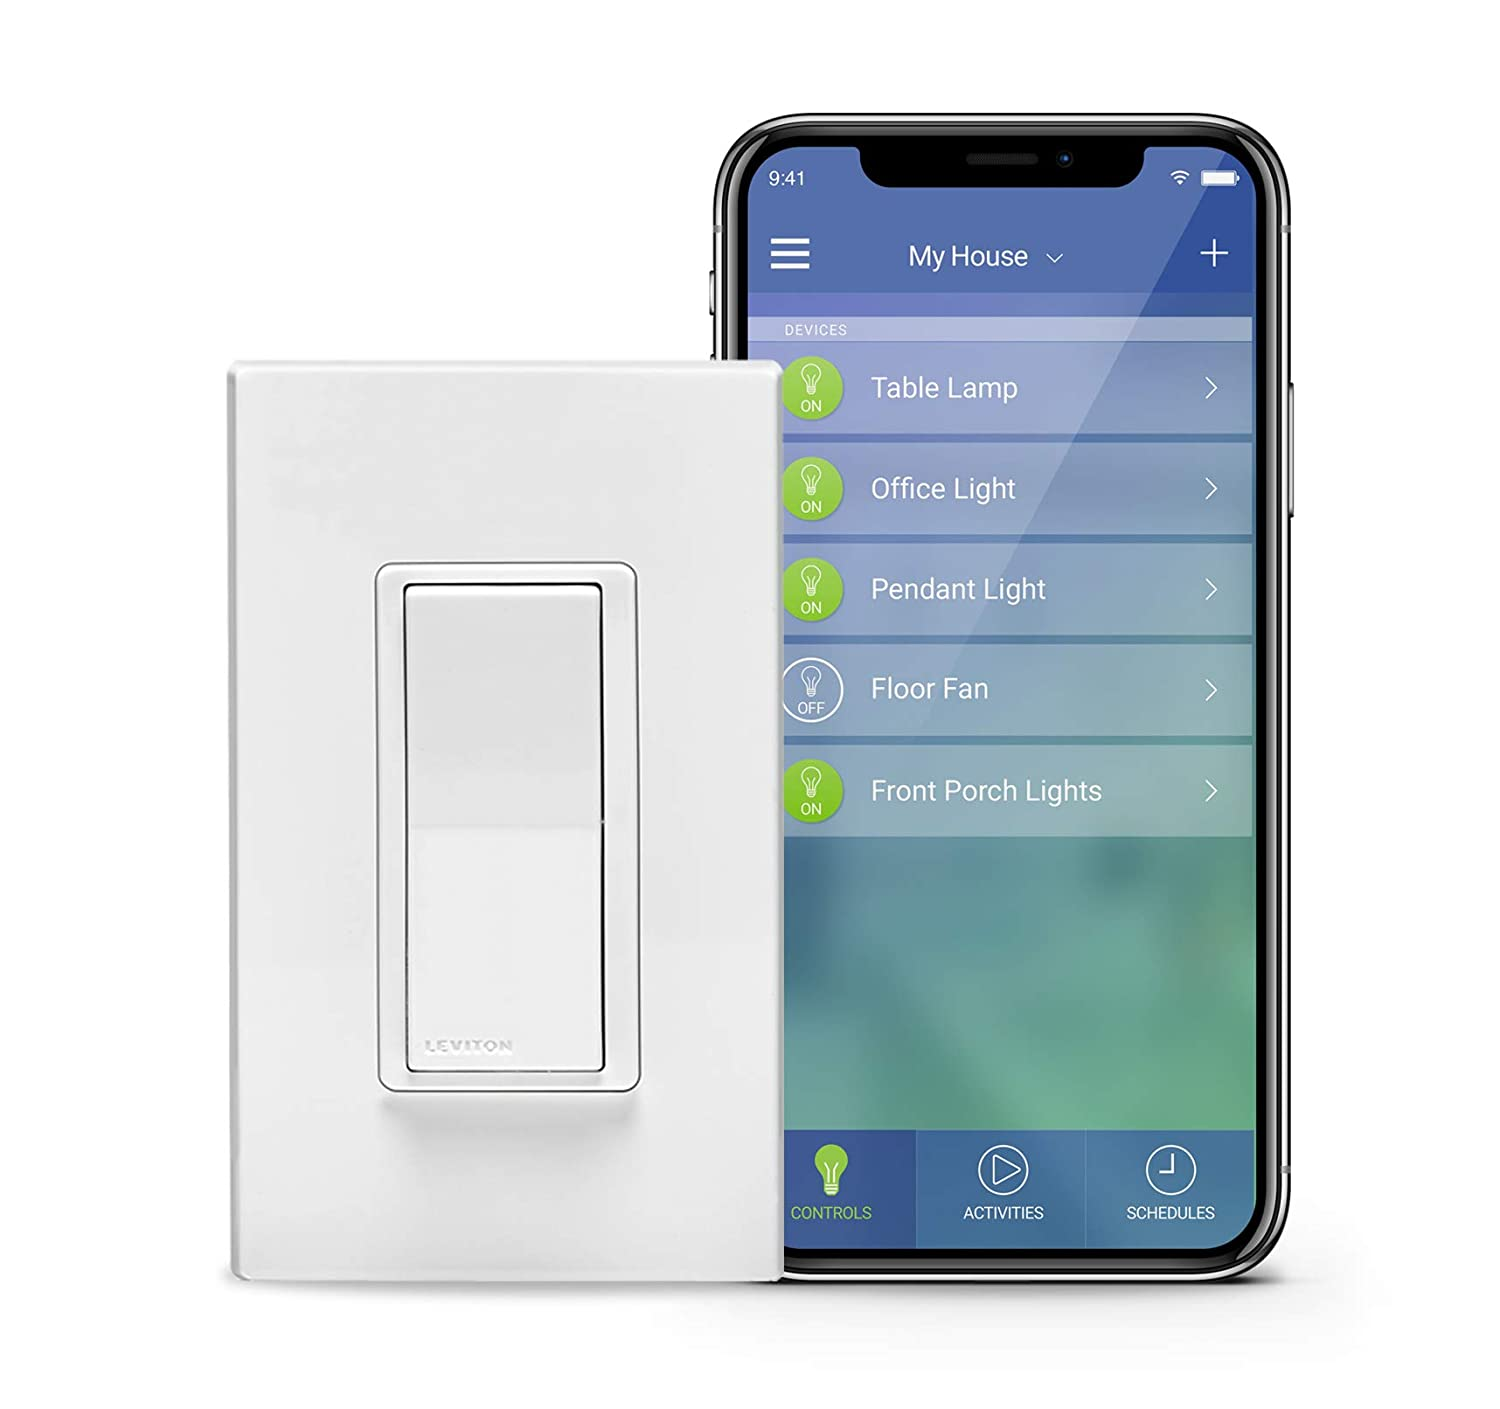 Leviton Dw15s 1bz Decora Smart Wi Fi 15a Universal Led Incandescent Lighting Wiring Light Switch With Neutral Zwave Home Works Amazon Alexa No Hub Required